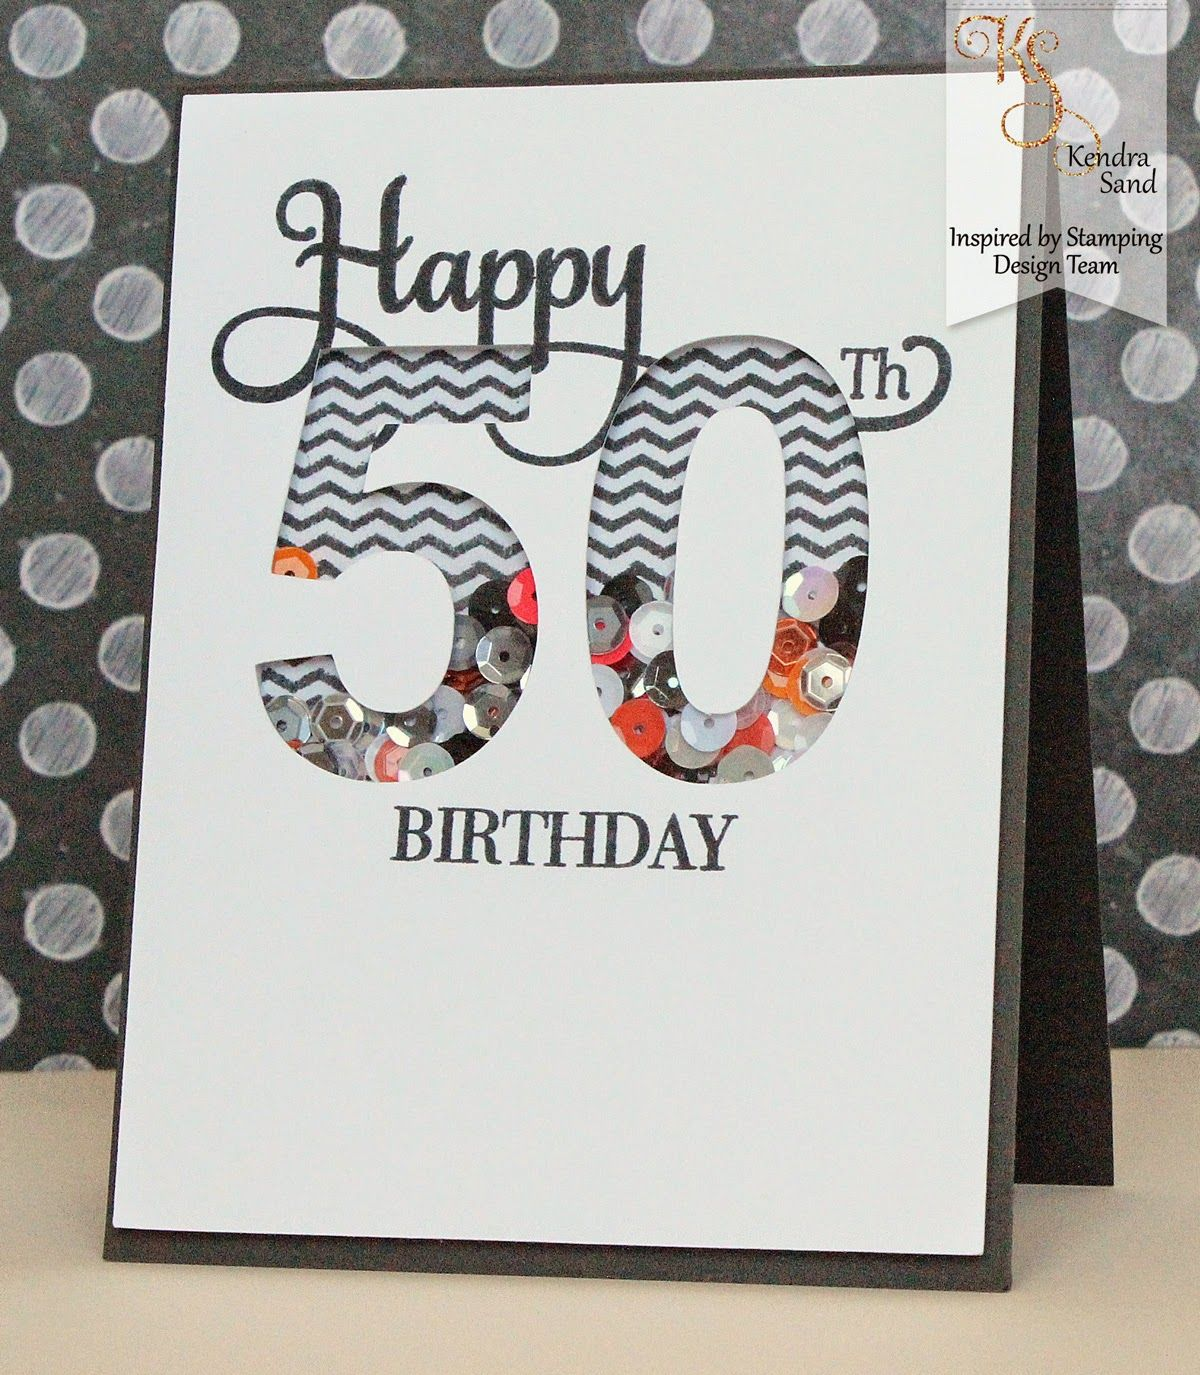 50th Birthday Cards Cricut: Luv 2 Scrap N' Make Cards: Happy 50th With Inspired By